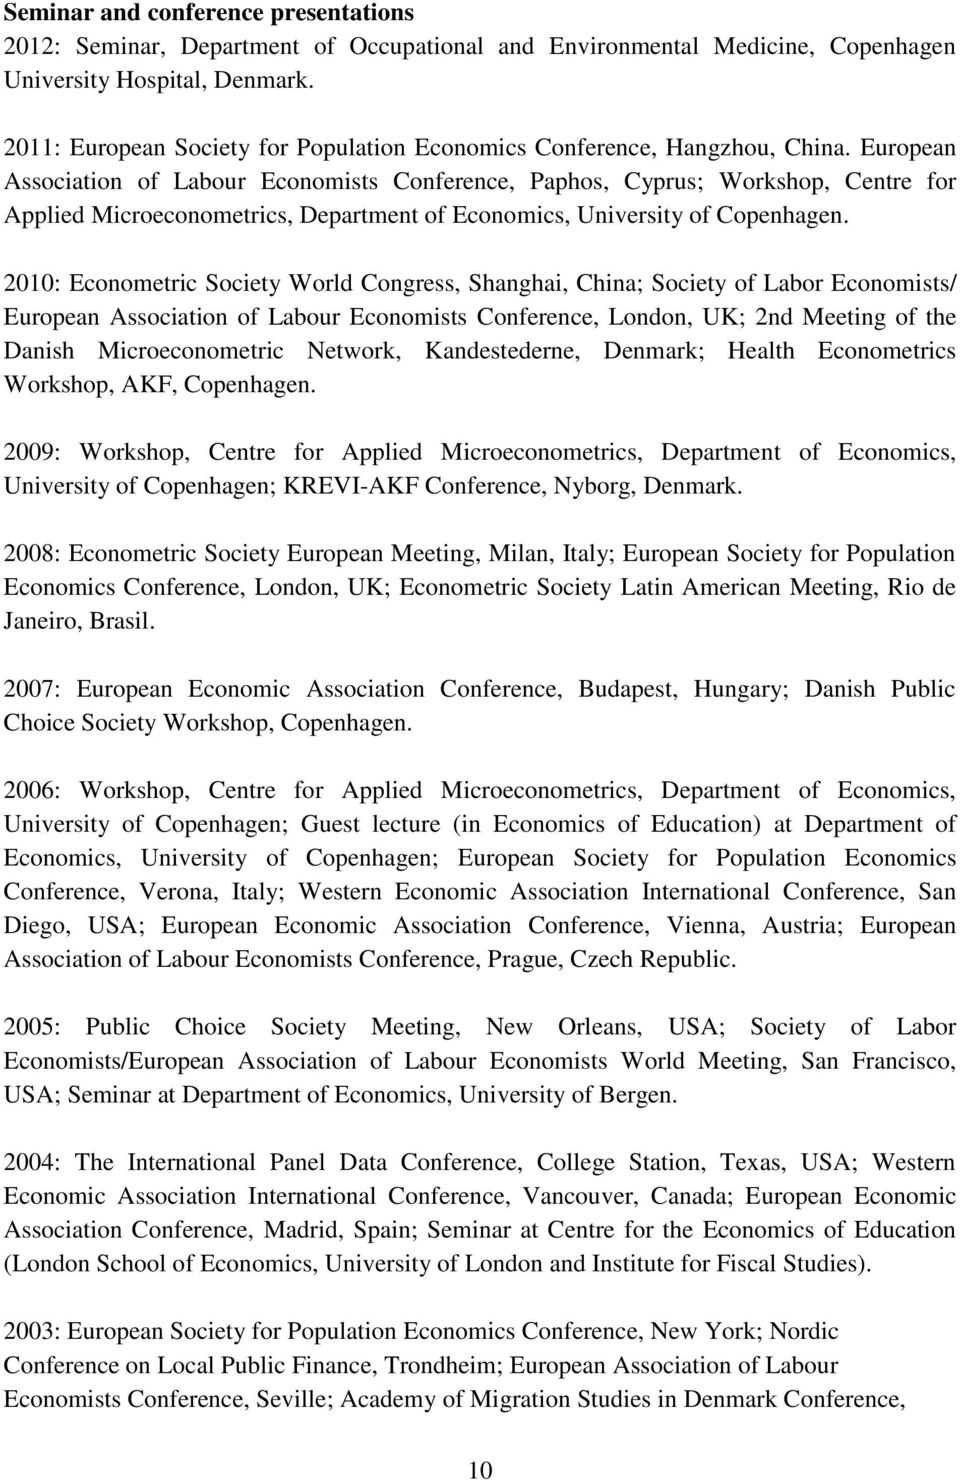 European Association of Labour Economists Conference, Paphos, Cyprus; Workshop, Centre for Applied Microeconometrics, Department of Economics, University of Copenhagen.